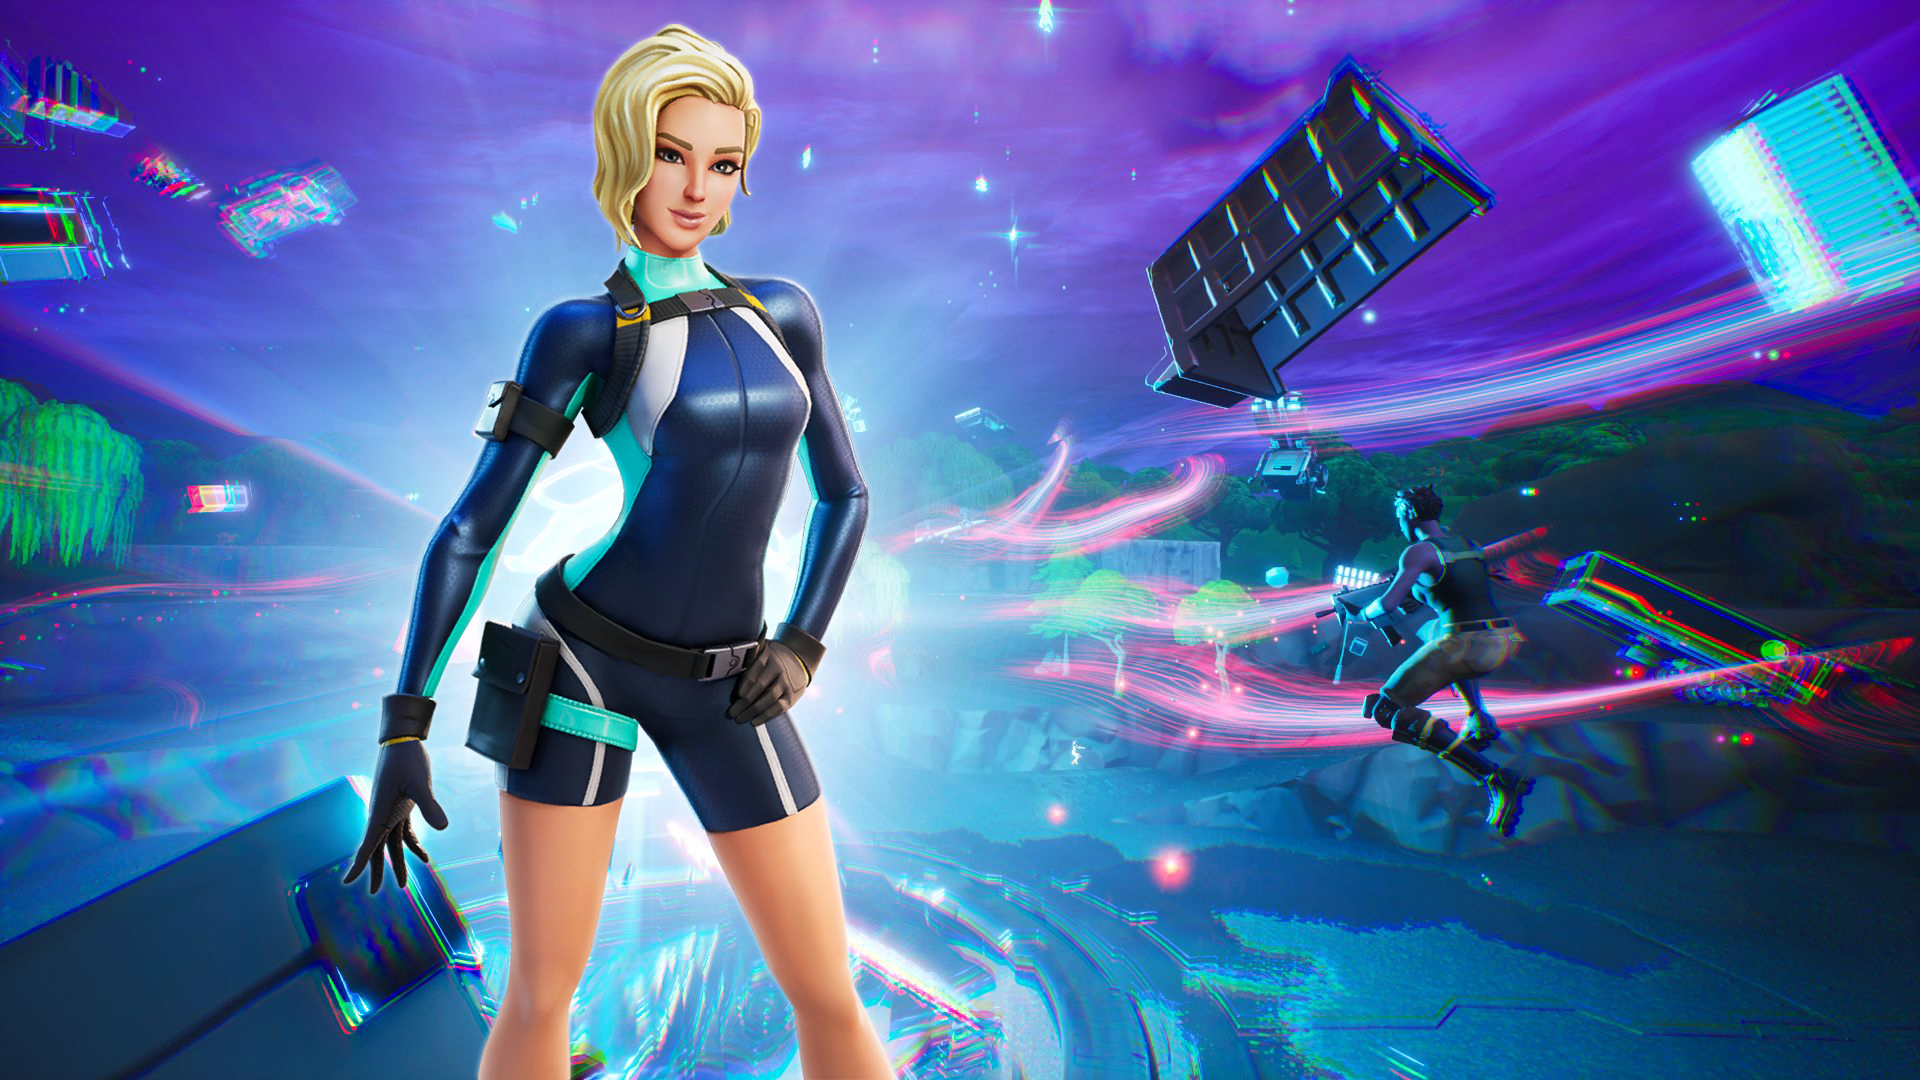 Surf Rider Skin Is Back Surf Rider Fortnite Wallpapers Everything You Need To Know About It Mega Themes